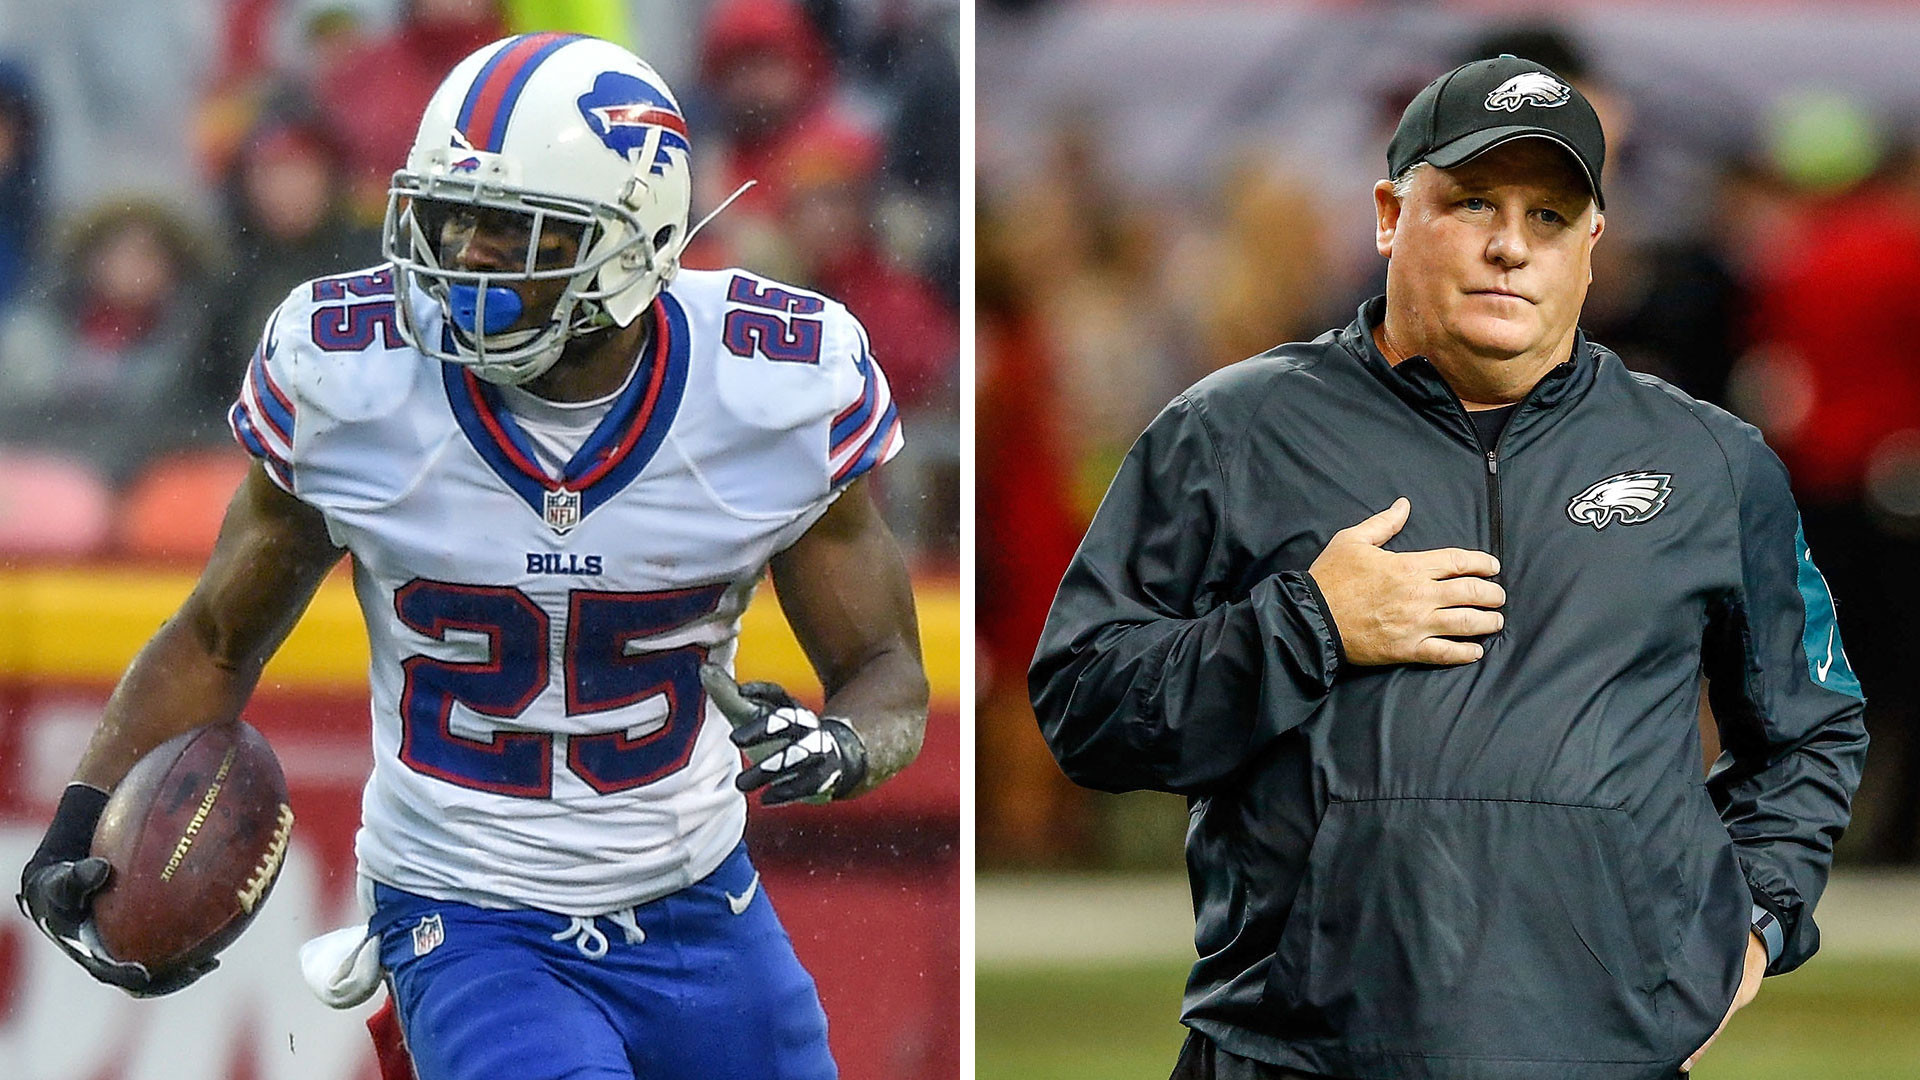 LeSean McCoy and Chip Kelly not enemies, but far from best friends | NFL |  Sporting News